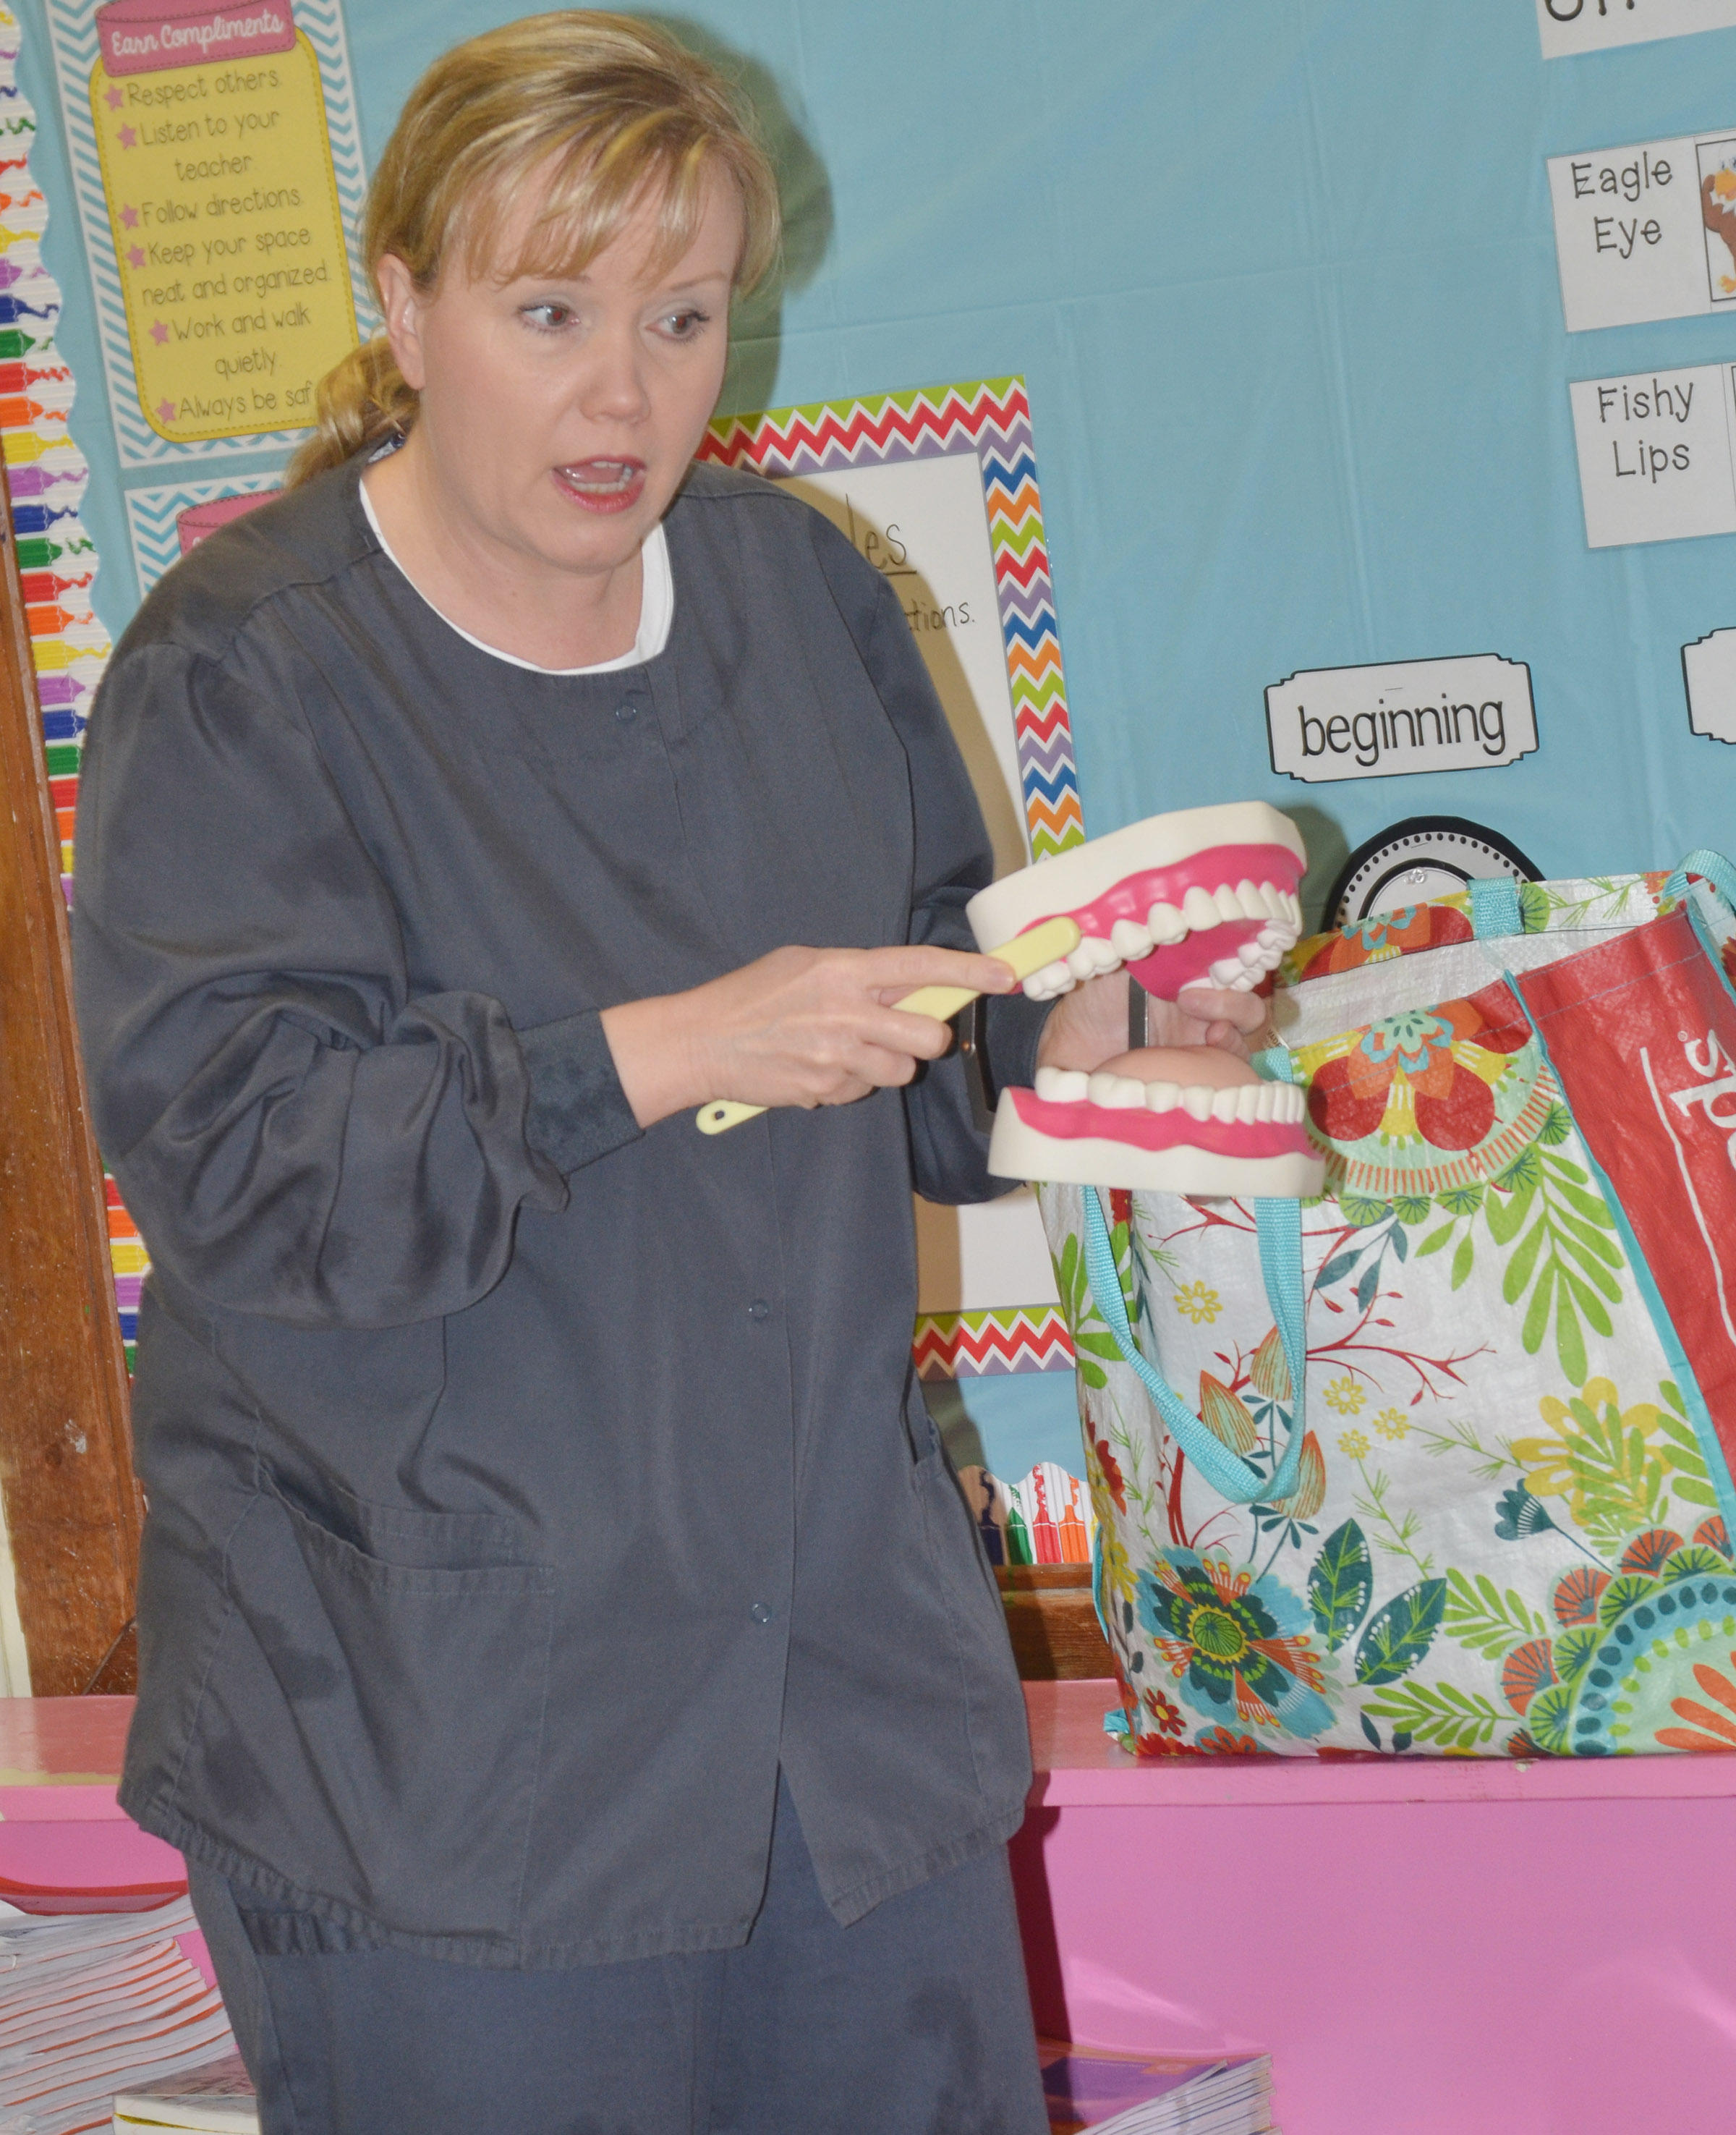 Dental hygienist Jennifer White, who works at Dr. Randy Smoot's dental office in Campbellsville, tells CES kindergarteners the proper way to brush their teeth.